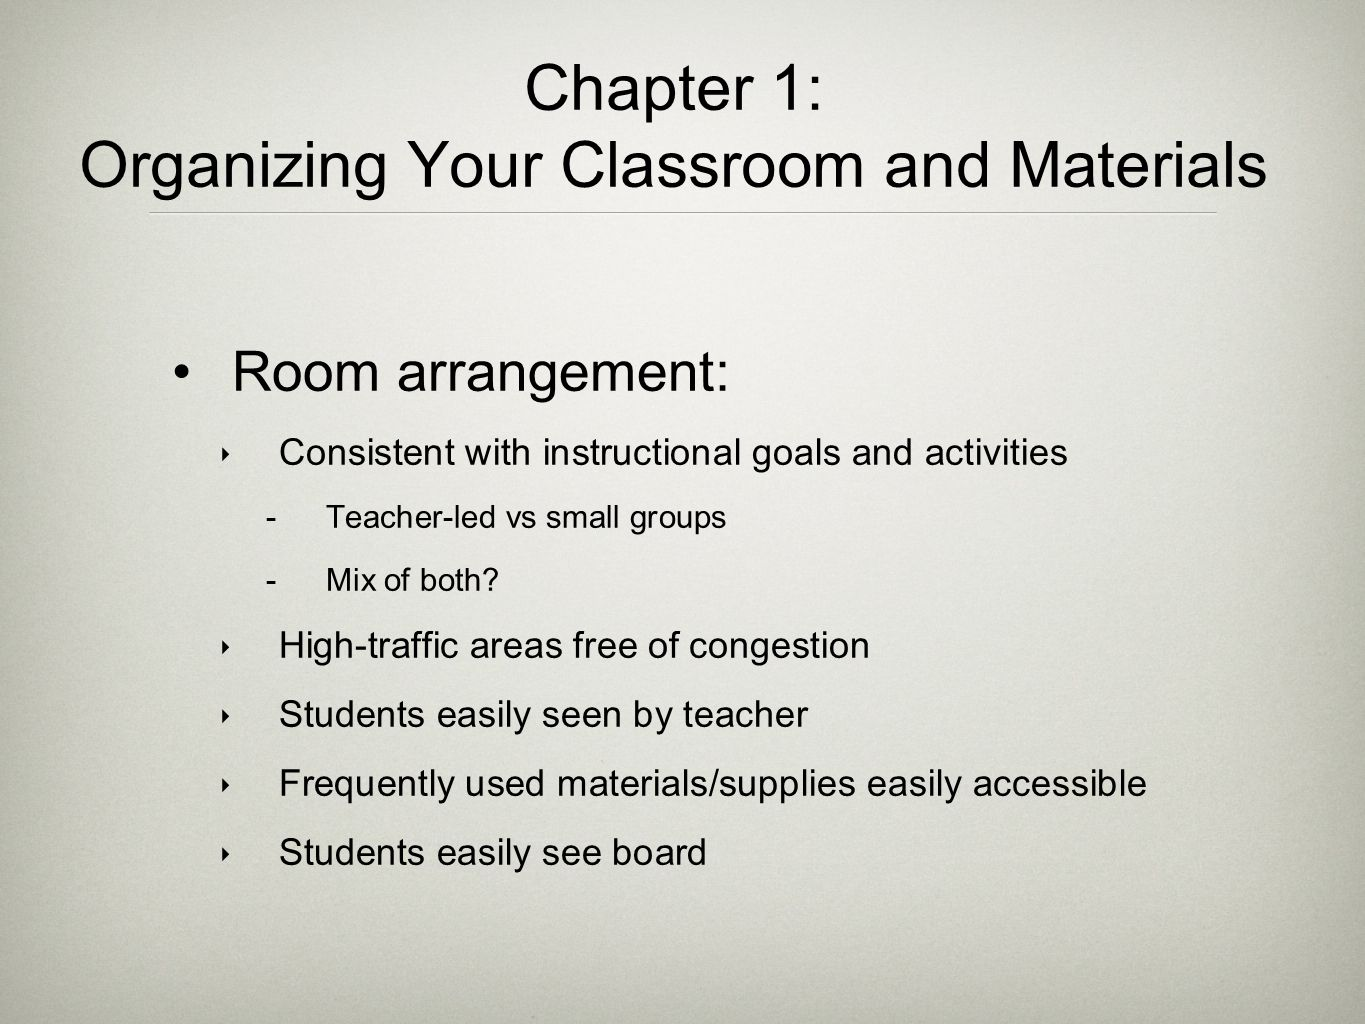 Chapter 1: Organizing Your Classroom and Materials